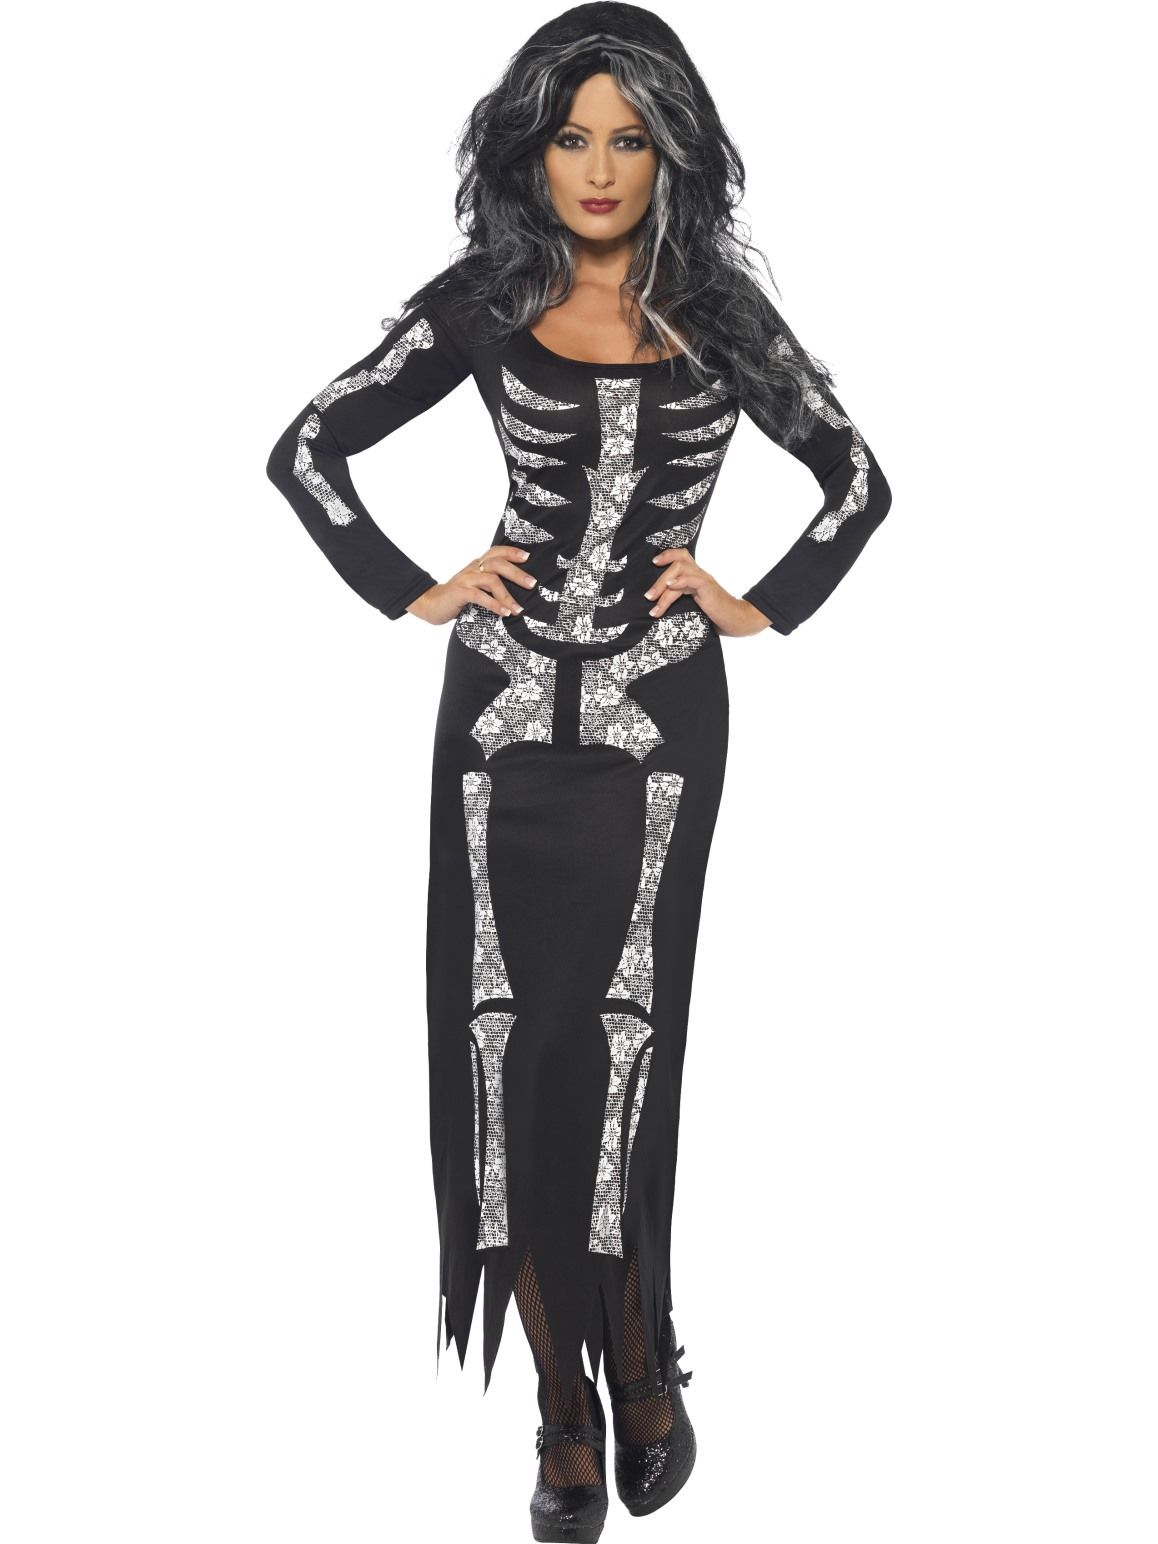 Skeleton Dress Costume - Buy